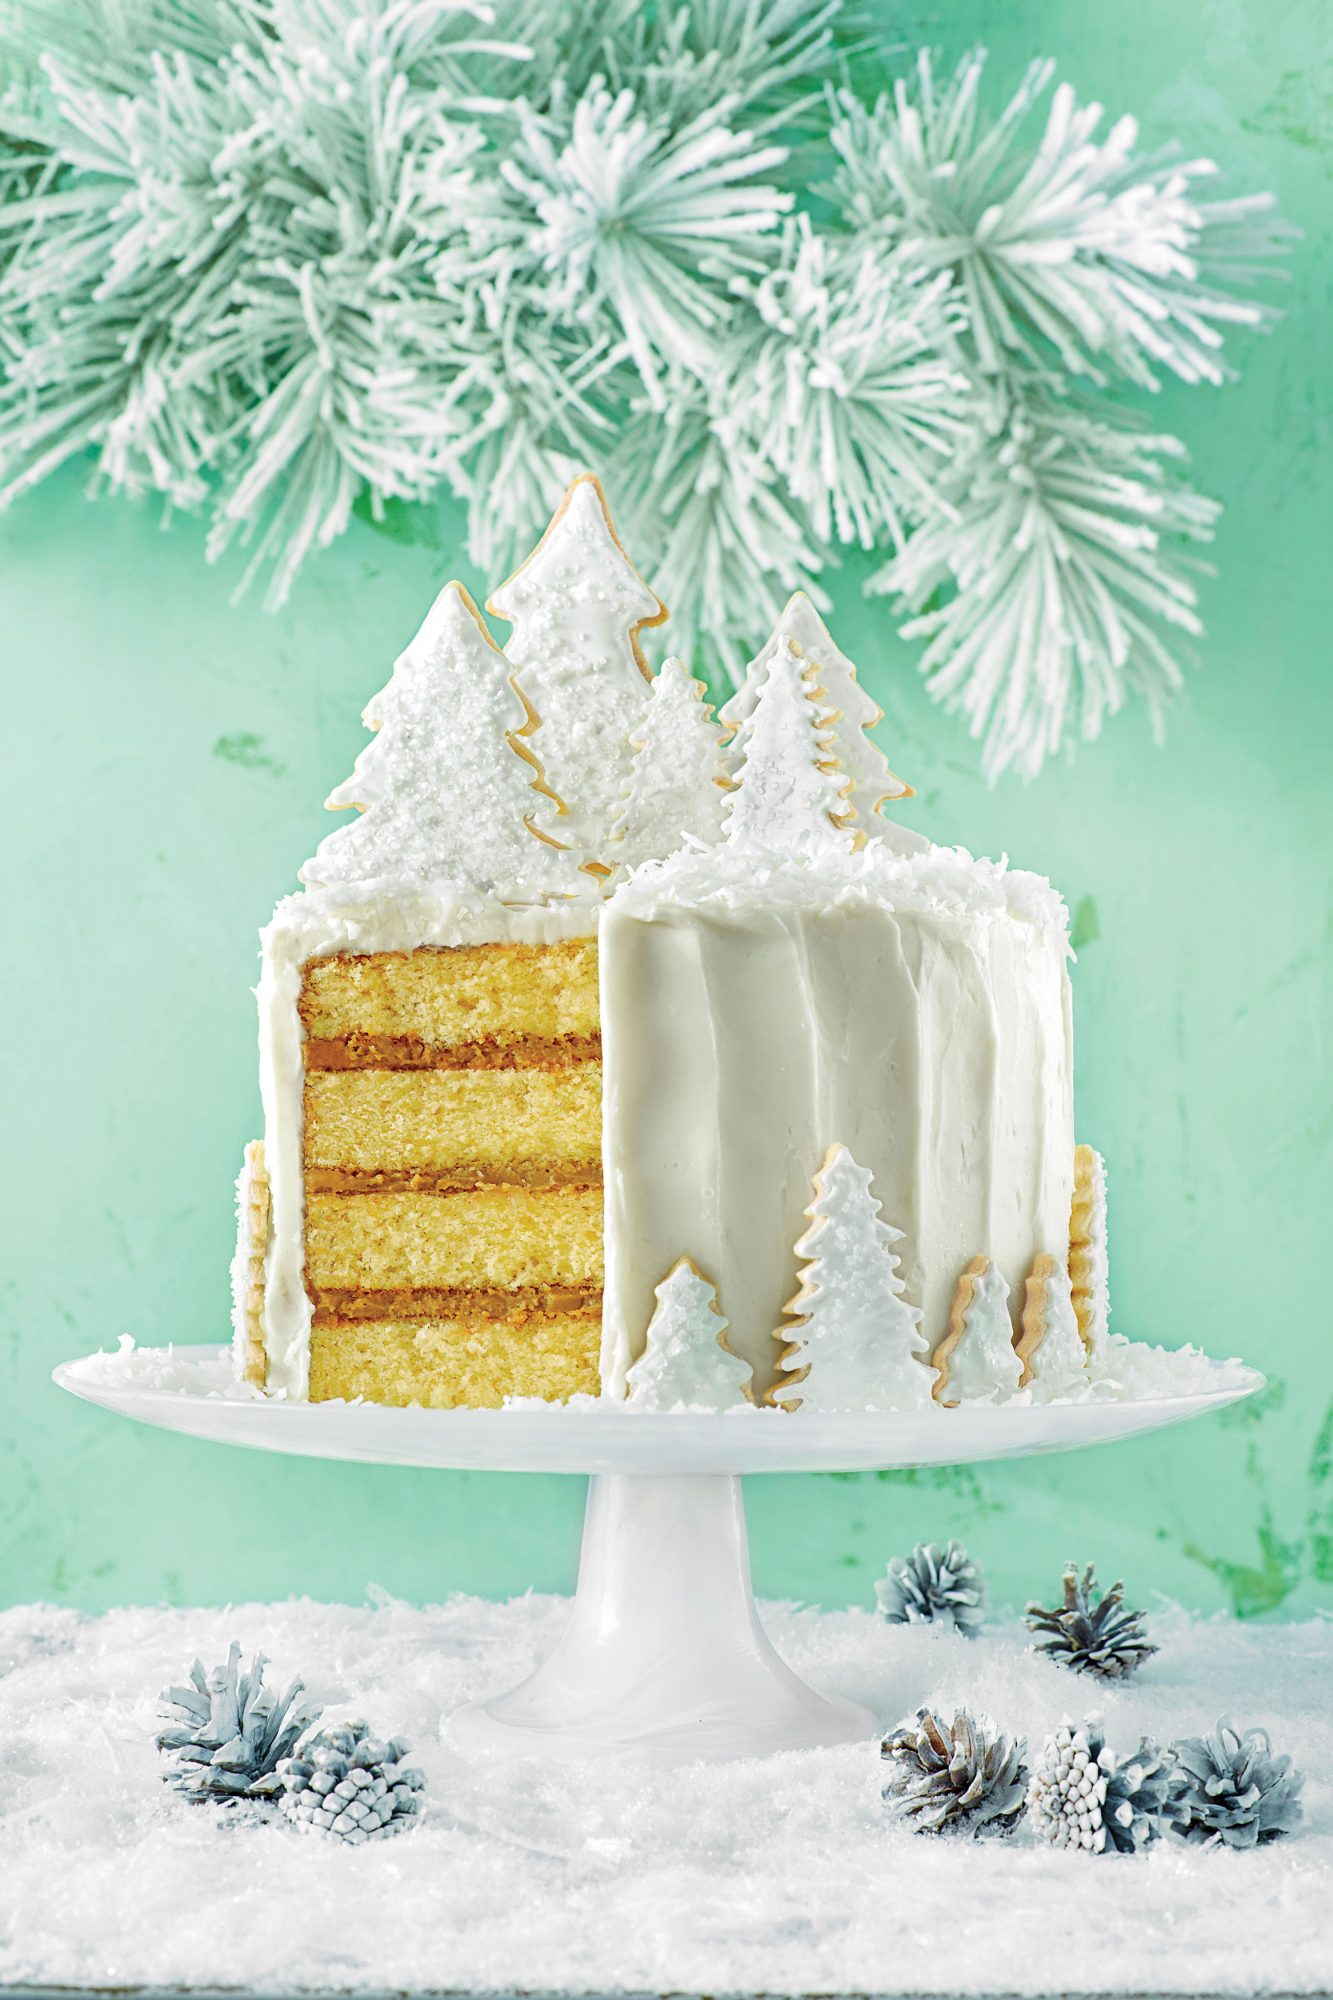 Coconut Cake with Rum Filling and Coconut Ermine Frosting image